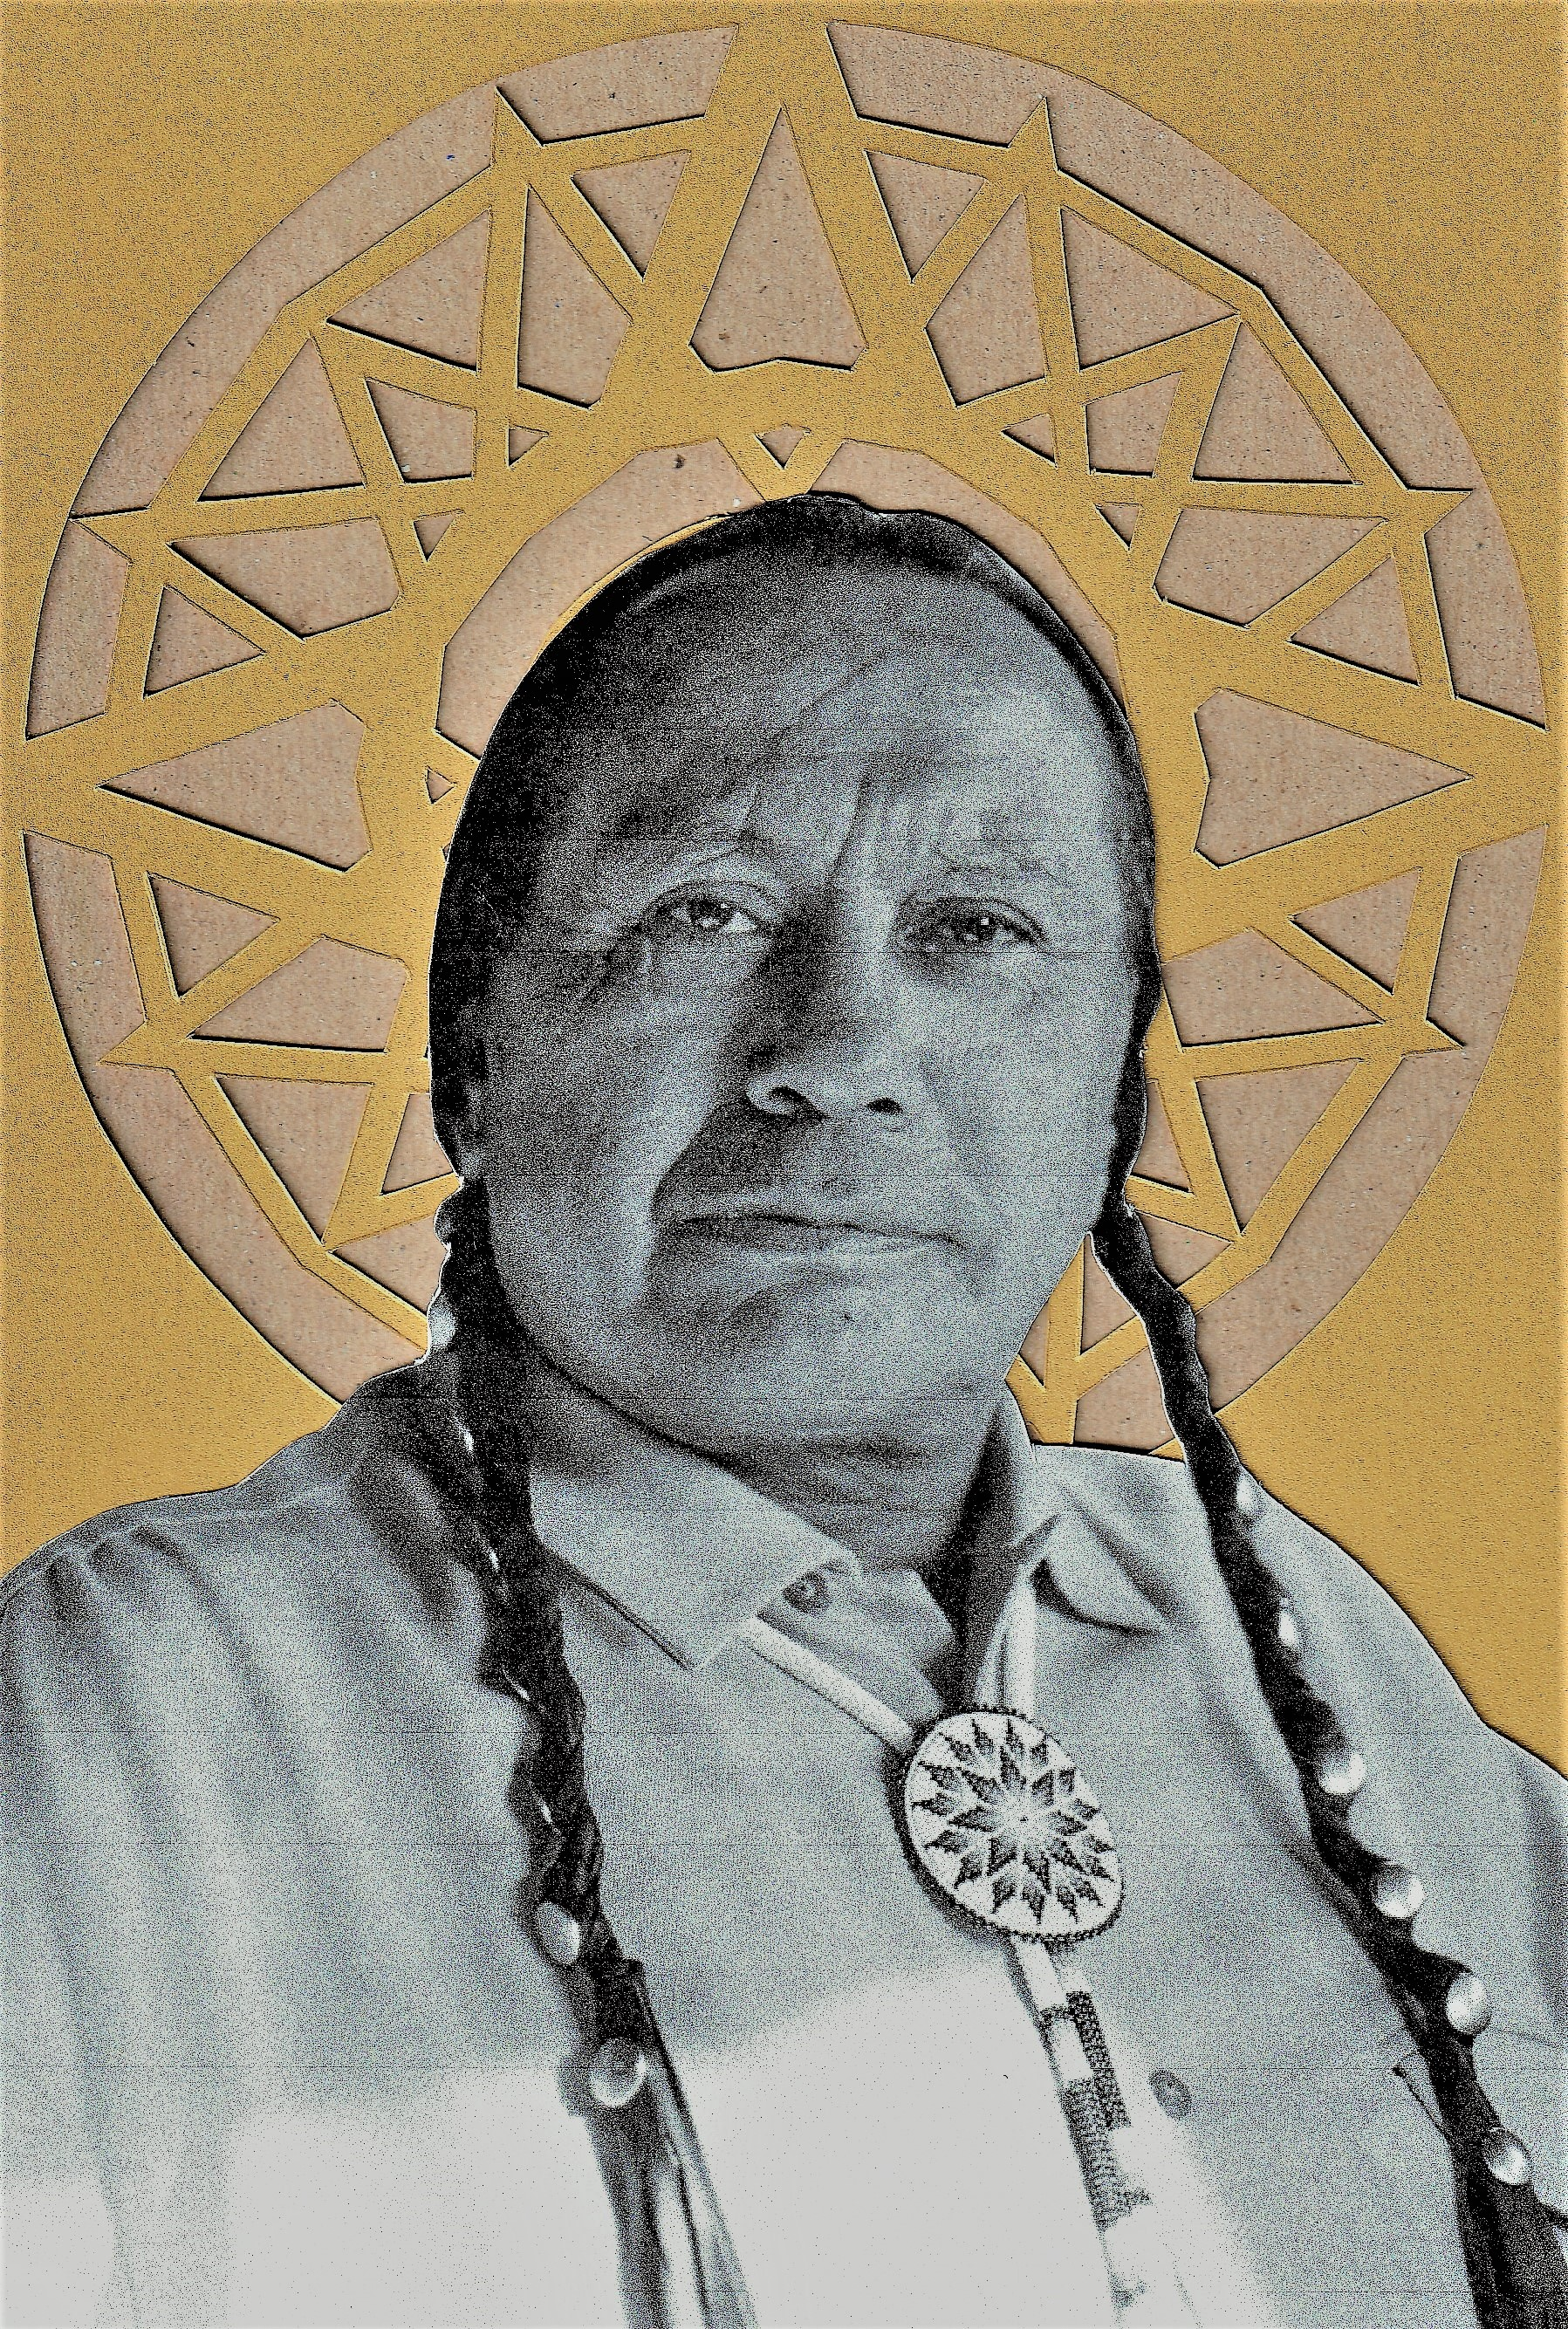 Russell Means Color Scan.jpg